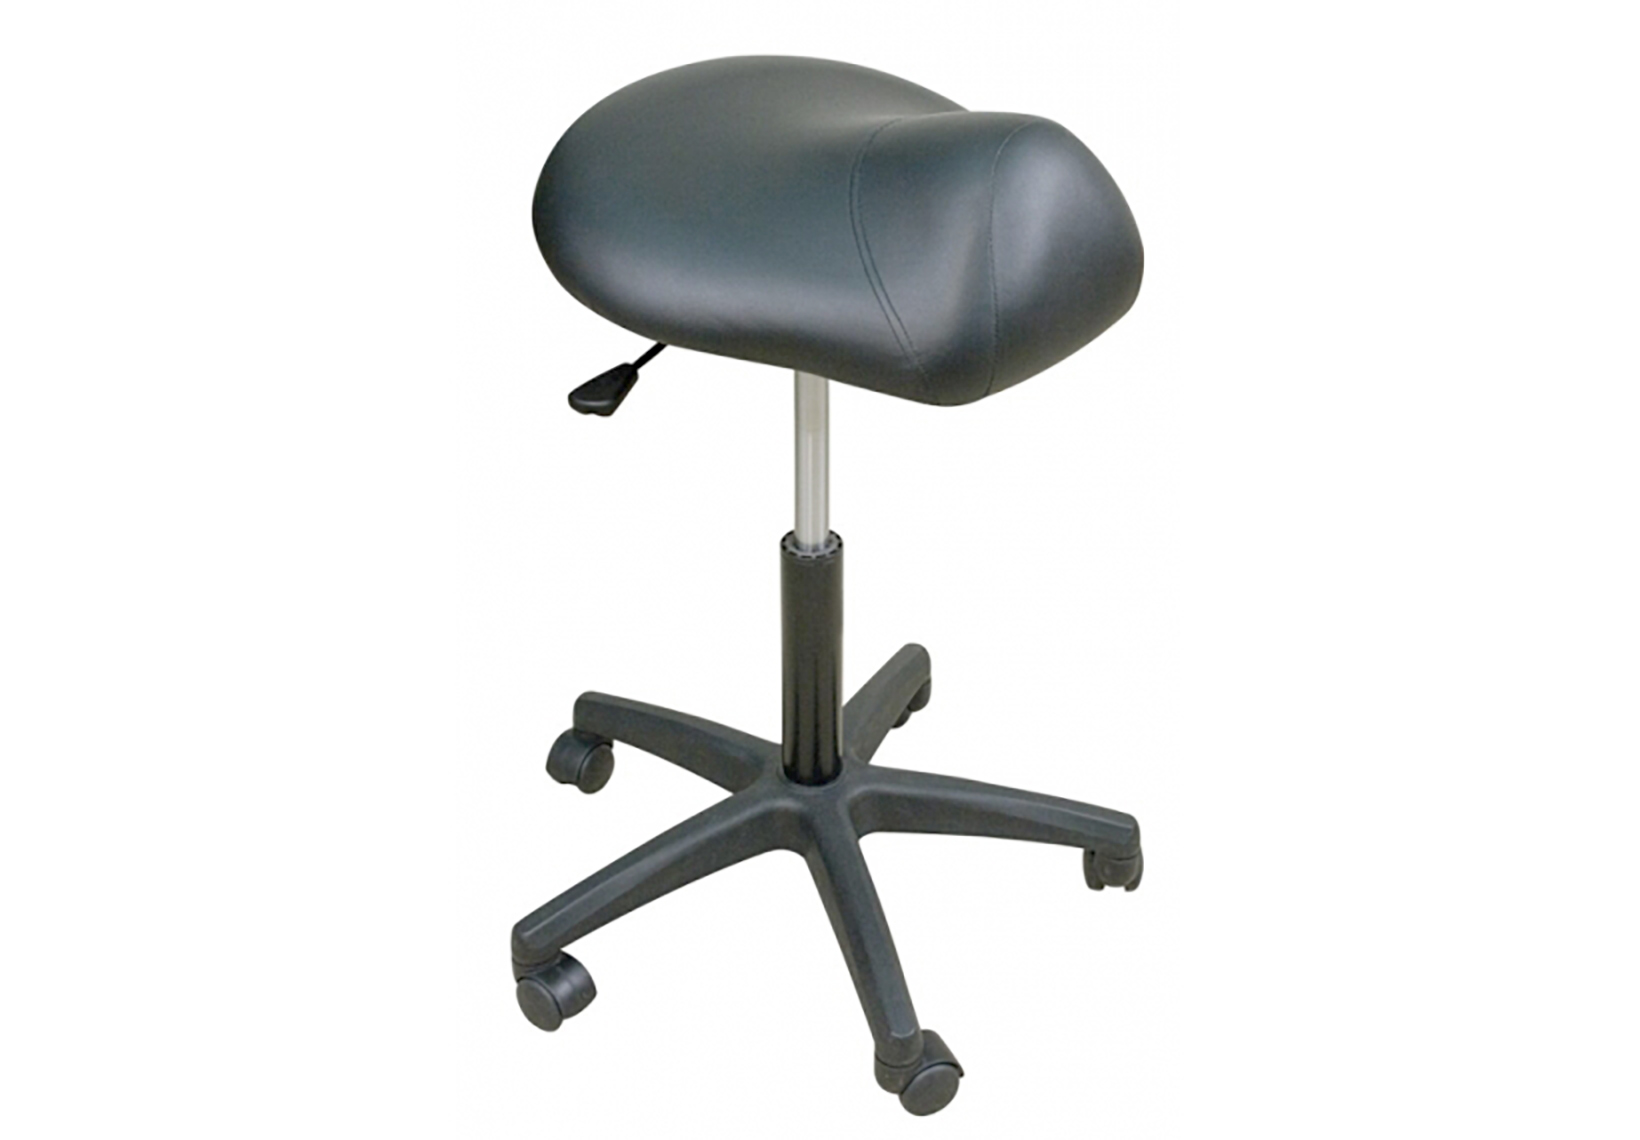 Premium Stool with Saddle Seat - High Height Range